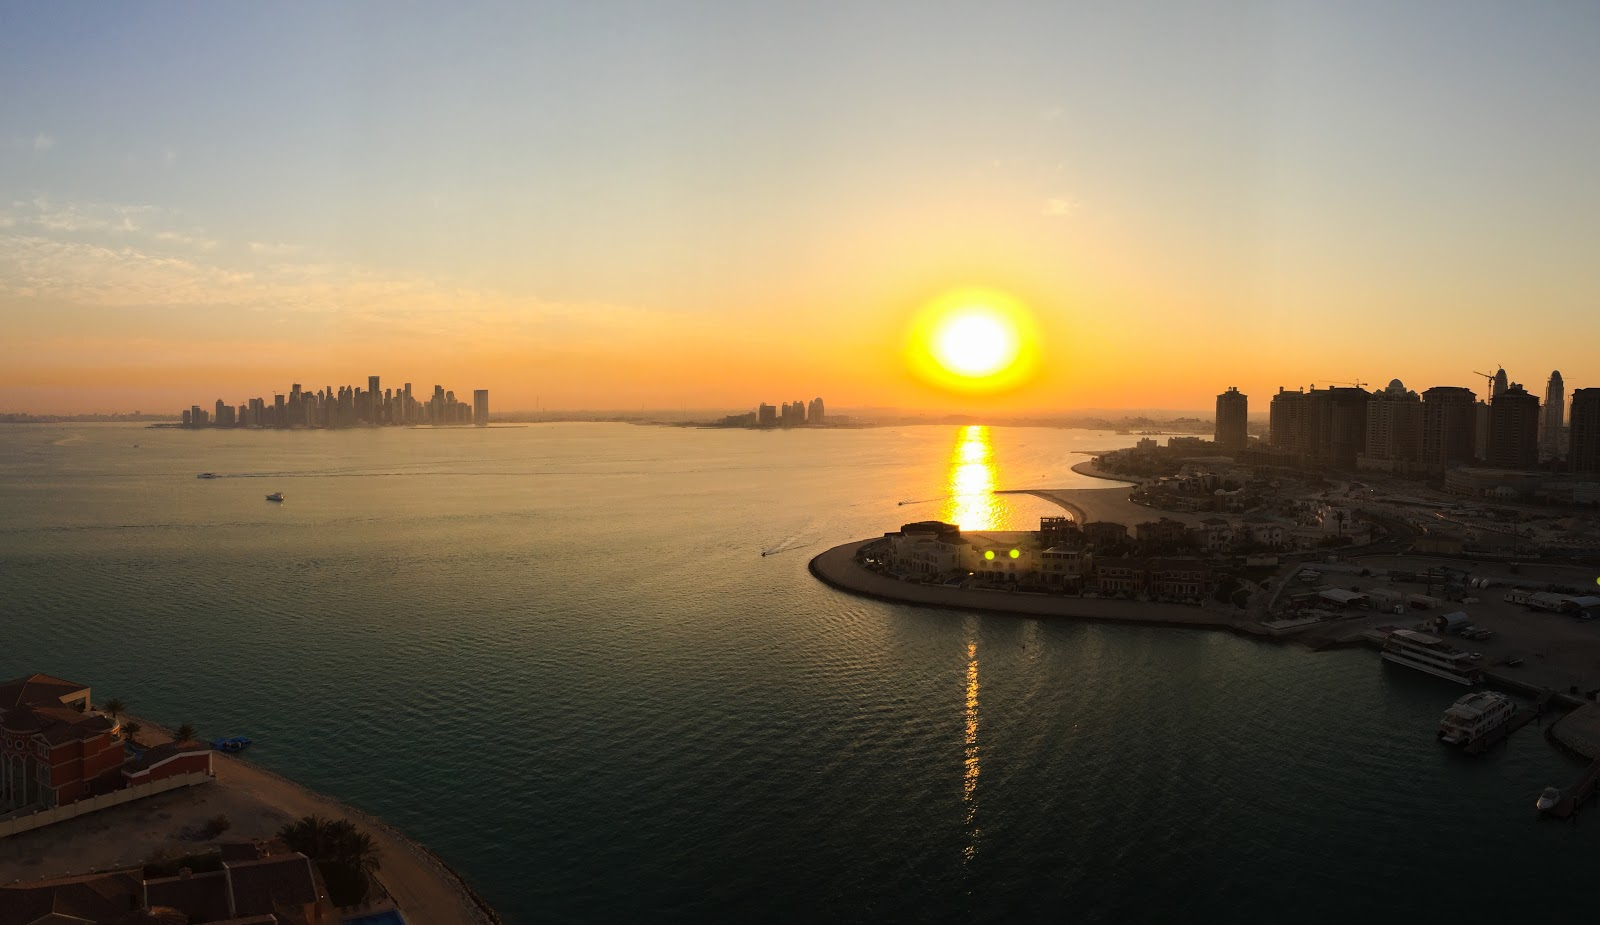 Visiting Qatar: Sunset City View